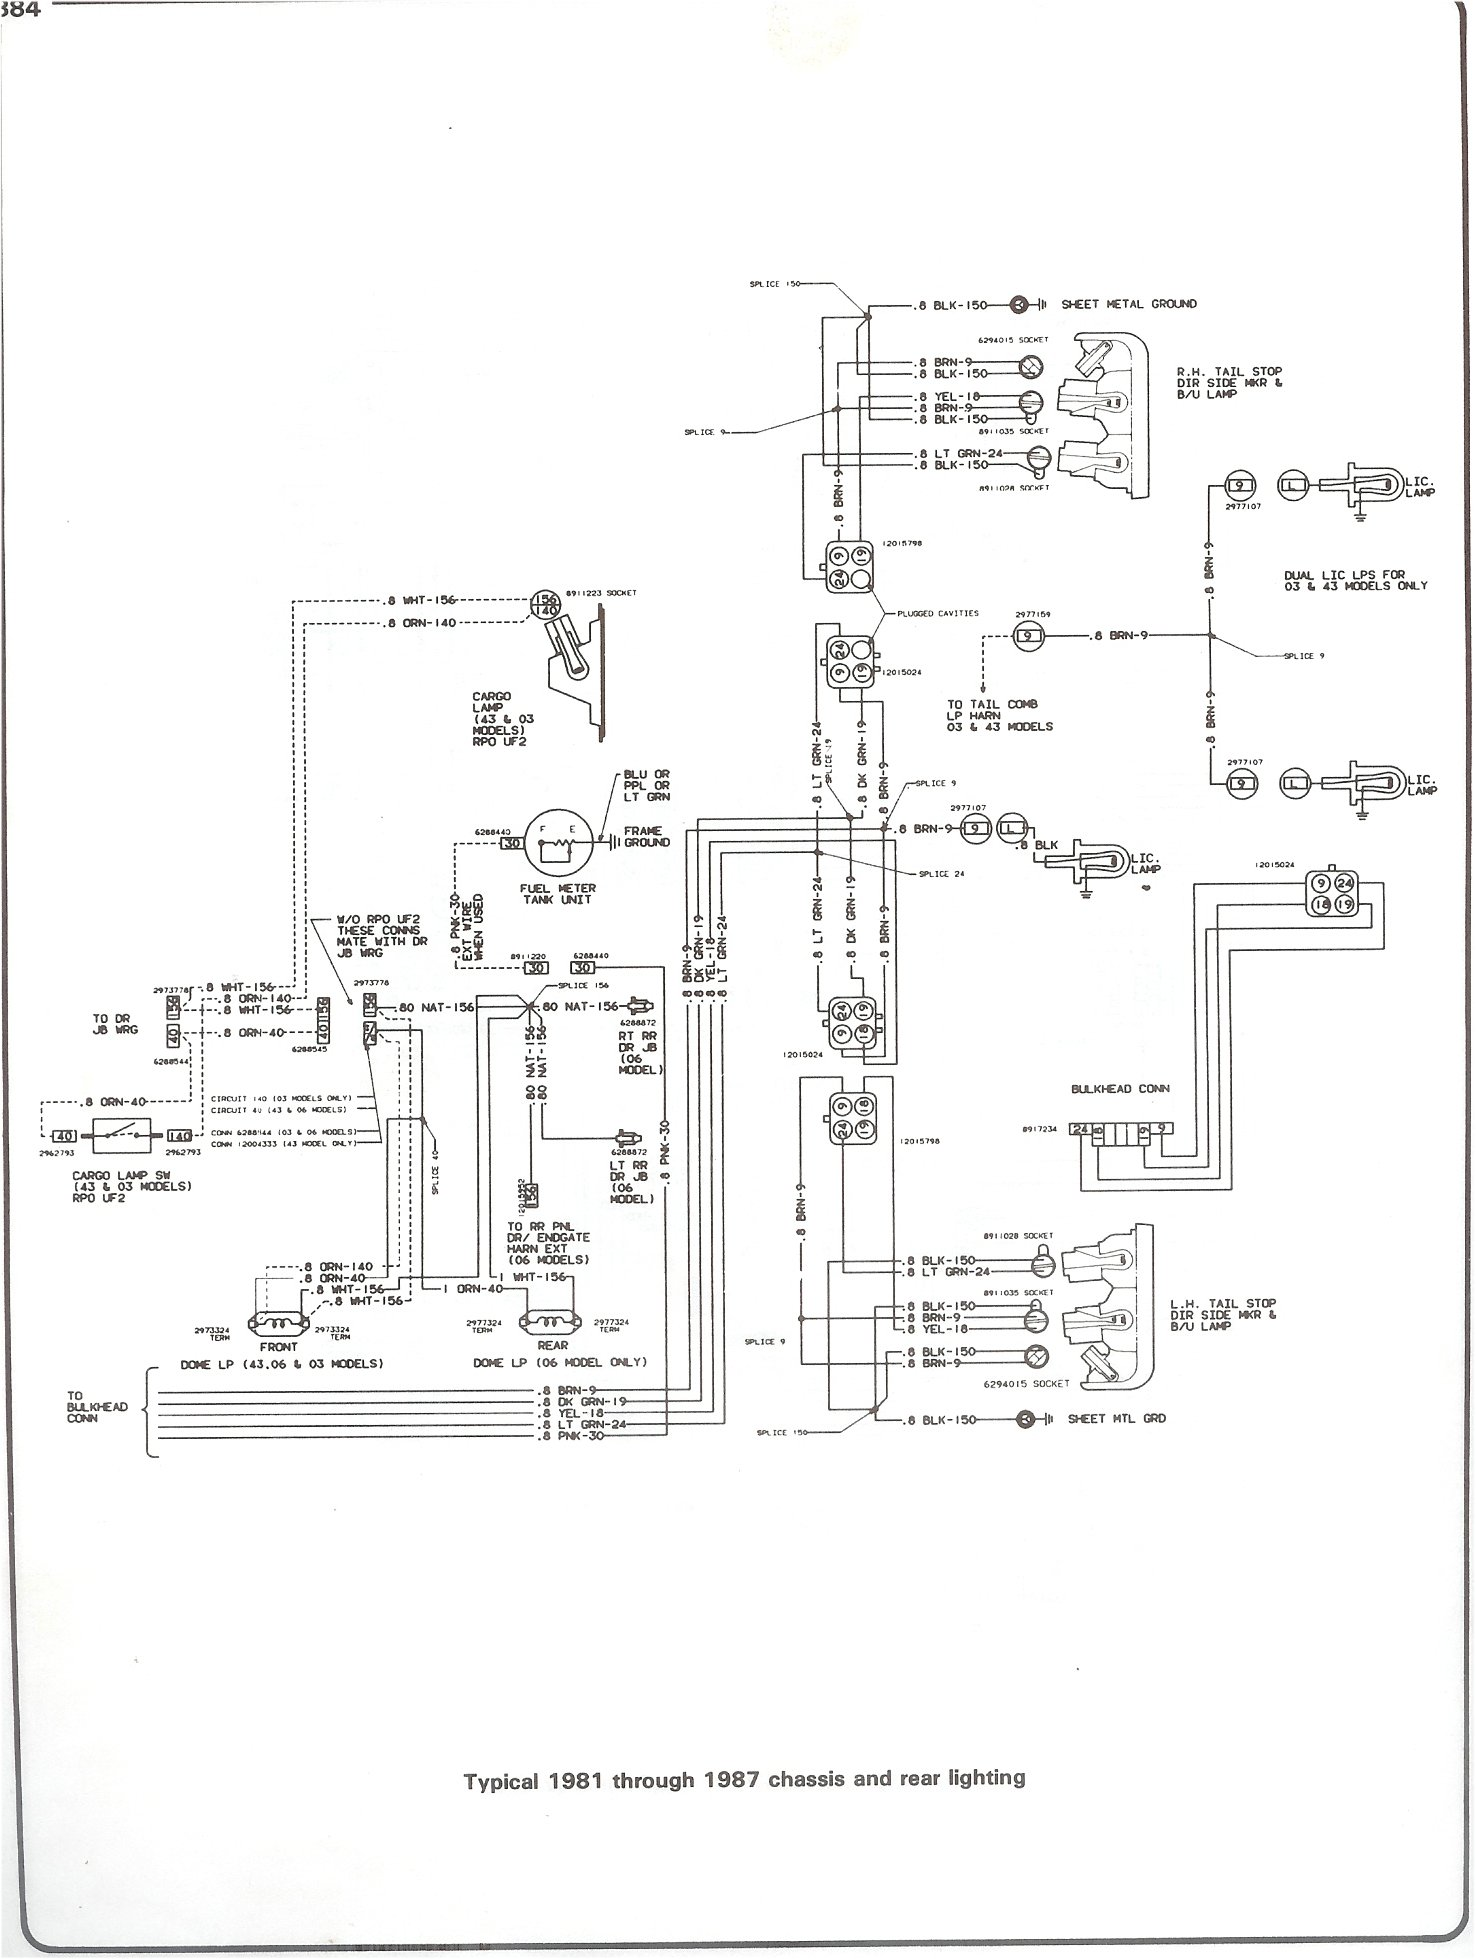 1985 Chevy C30 Wiring Diagram : 29 Wiring Diagram Images